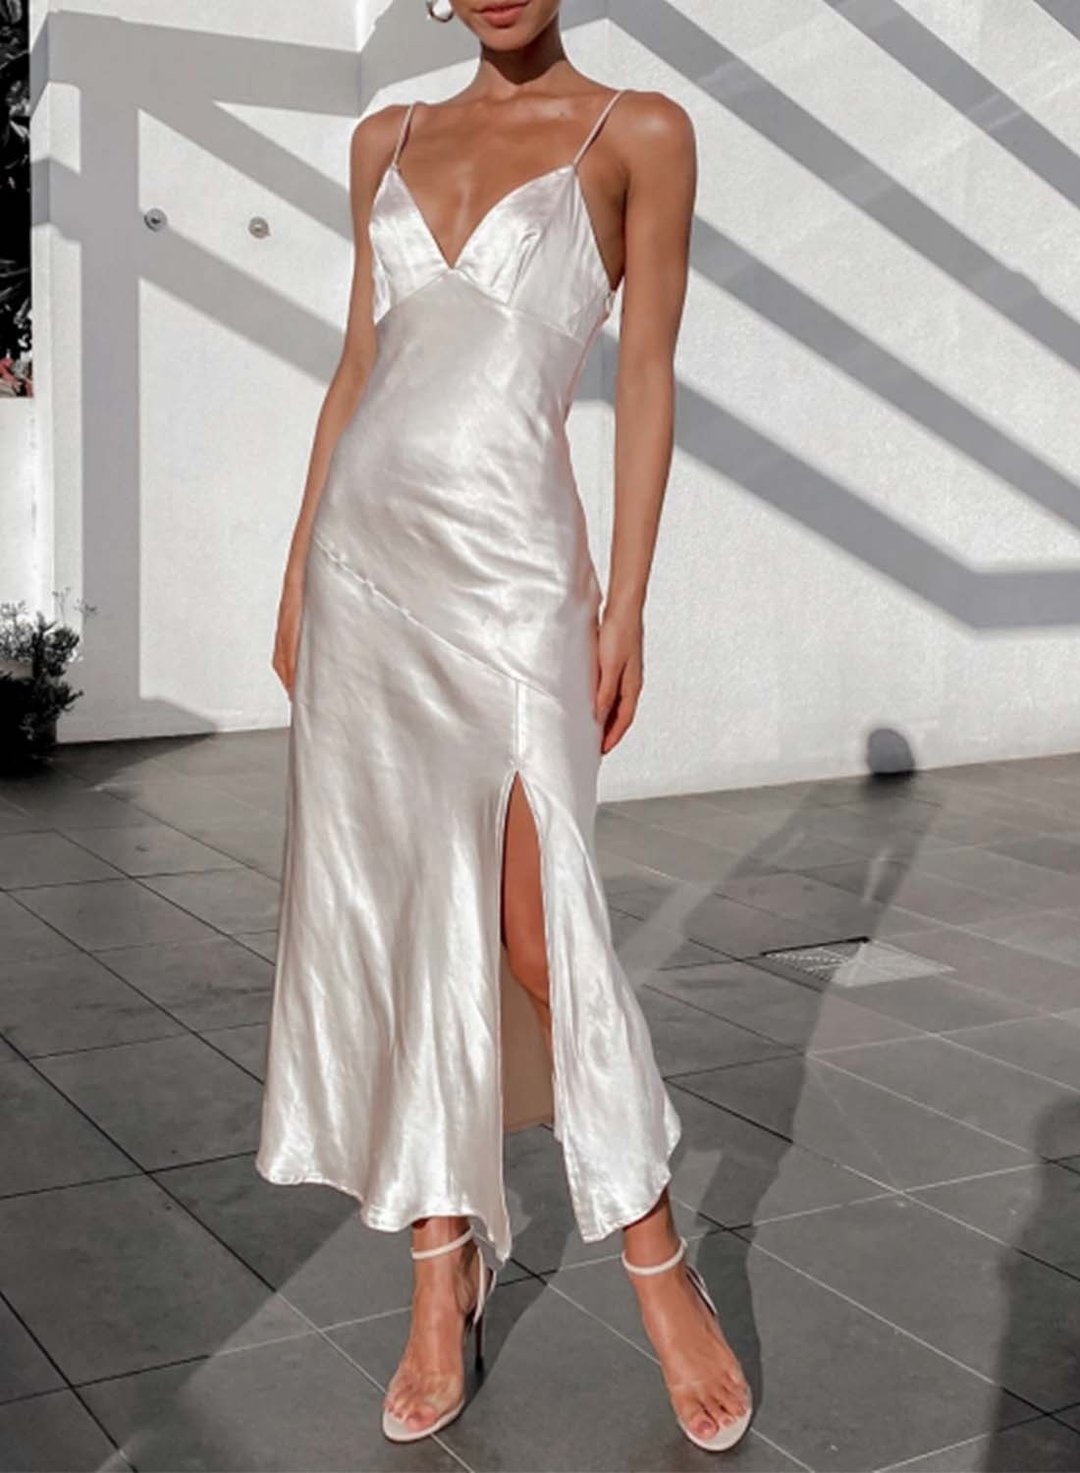 White Women's Maxi Dresses Satin Solid Sleeveless V Neck Split Dress LC614423-1